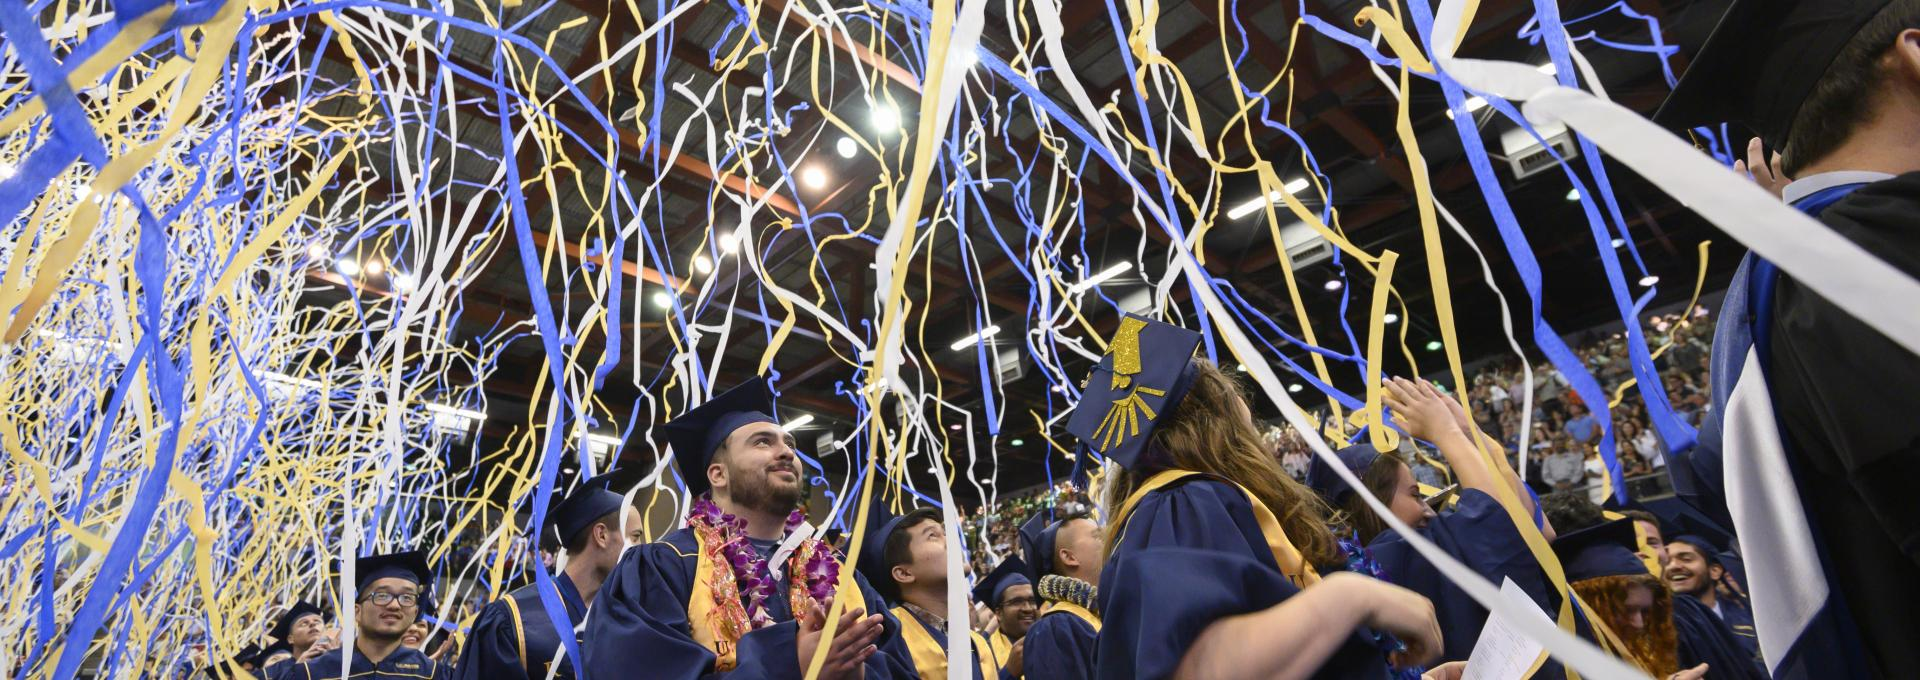 UC Davis Graduation with Streamers